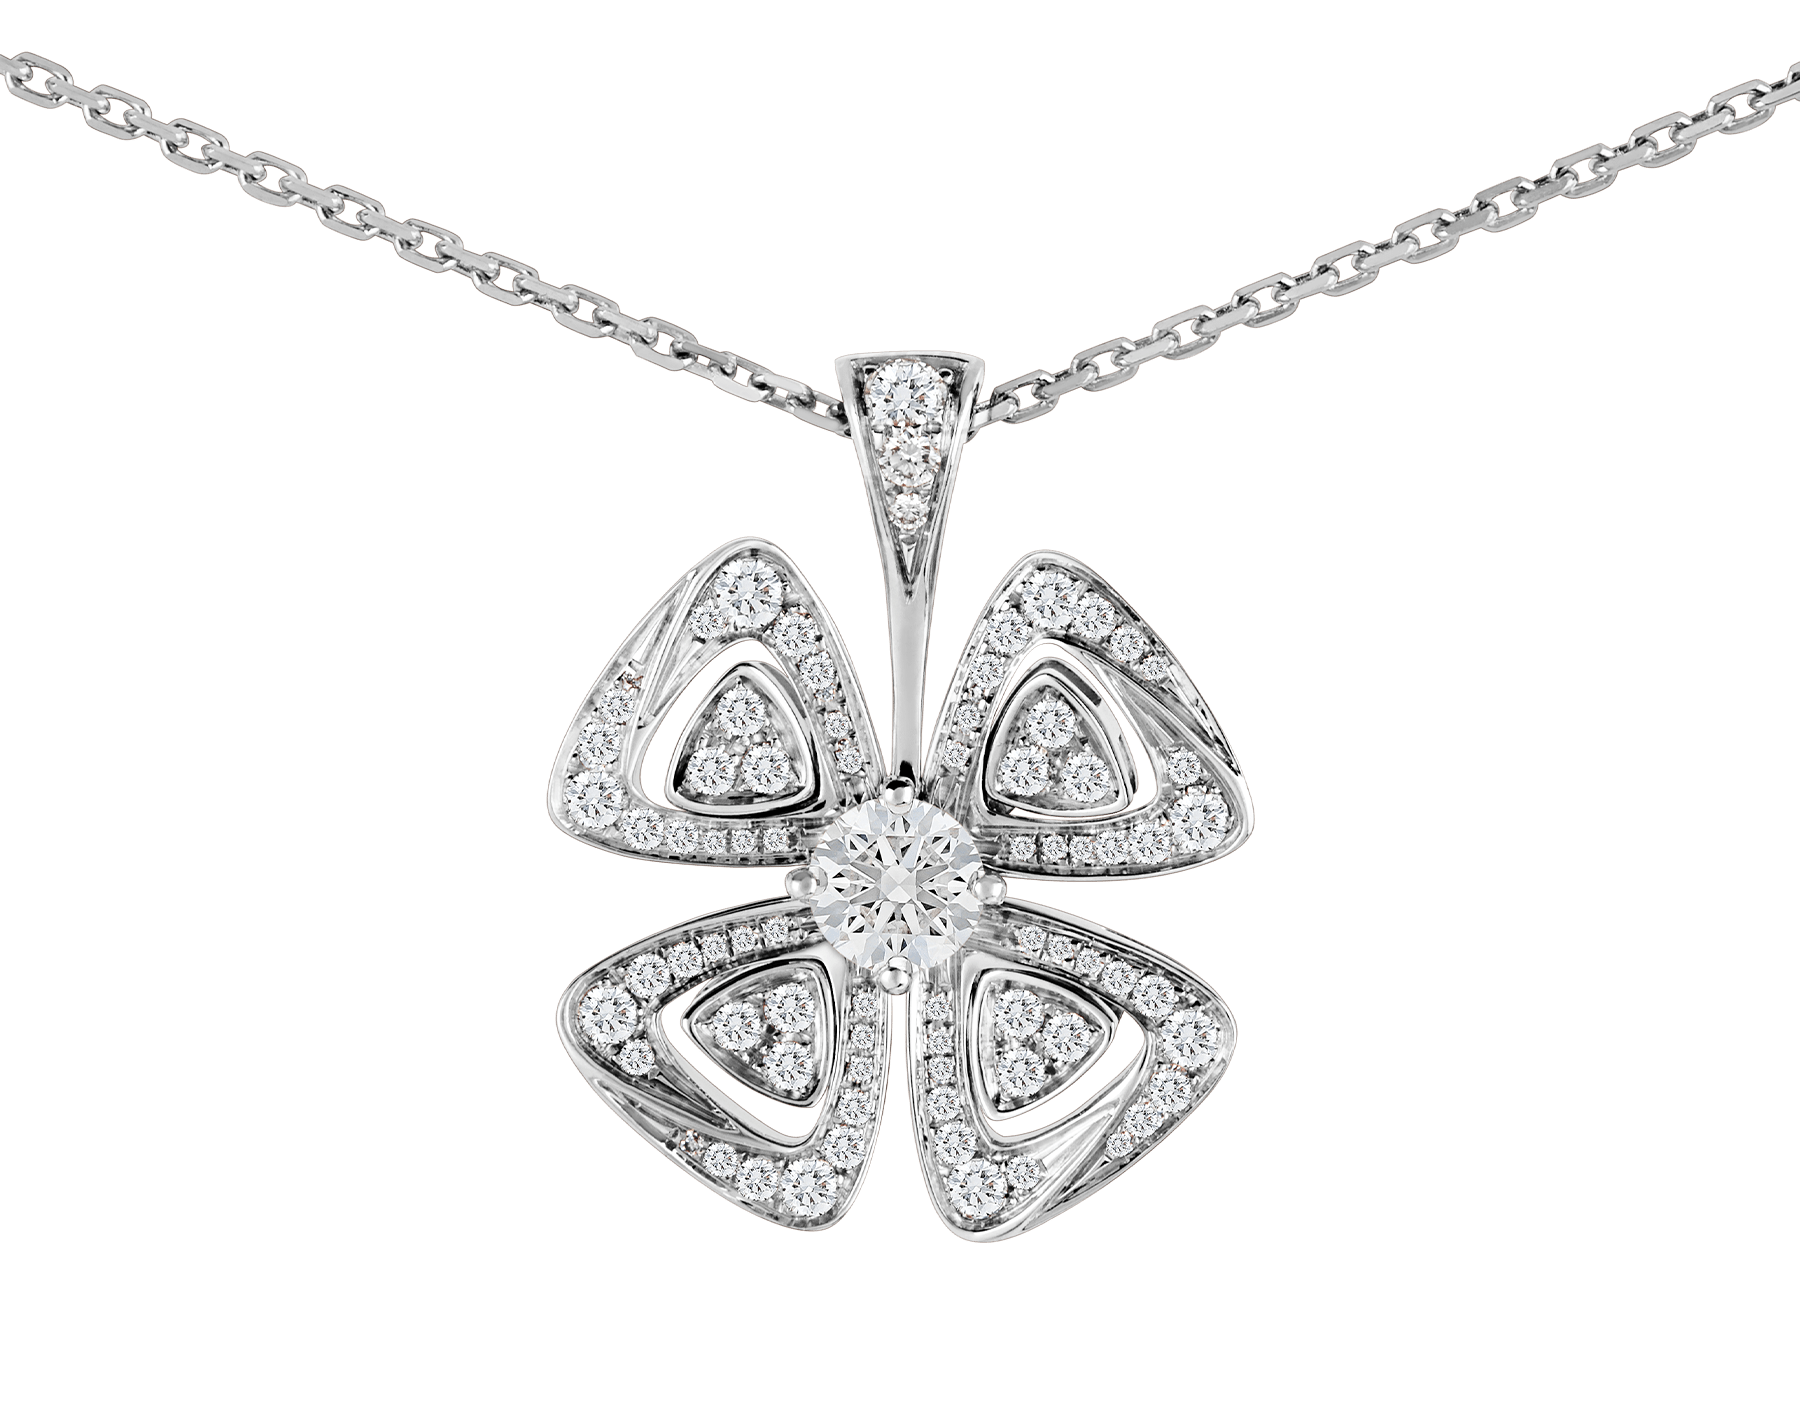 Fiorever 18 kt white gold necklace set with a central diamond (0.30 ct) and pavé diamonds (0.36 ct) 354496 image 3